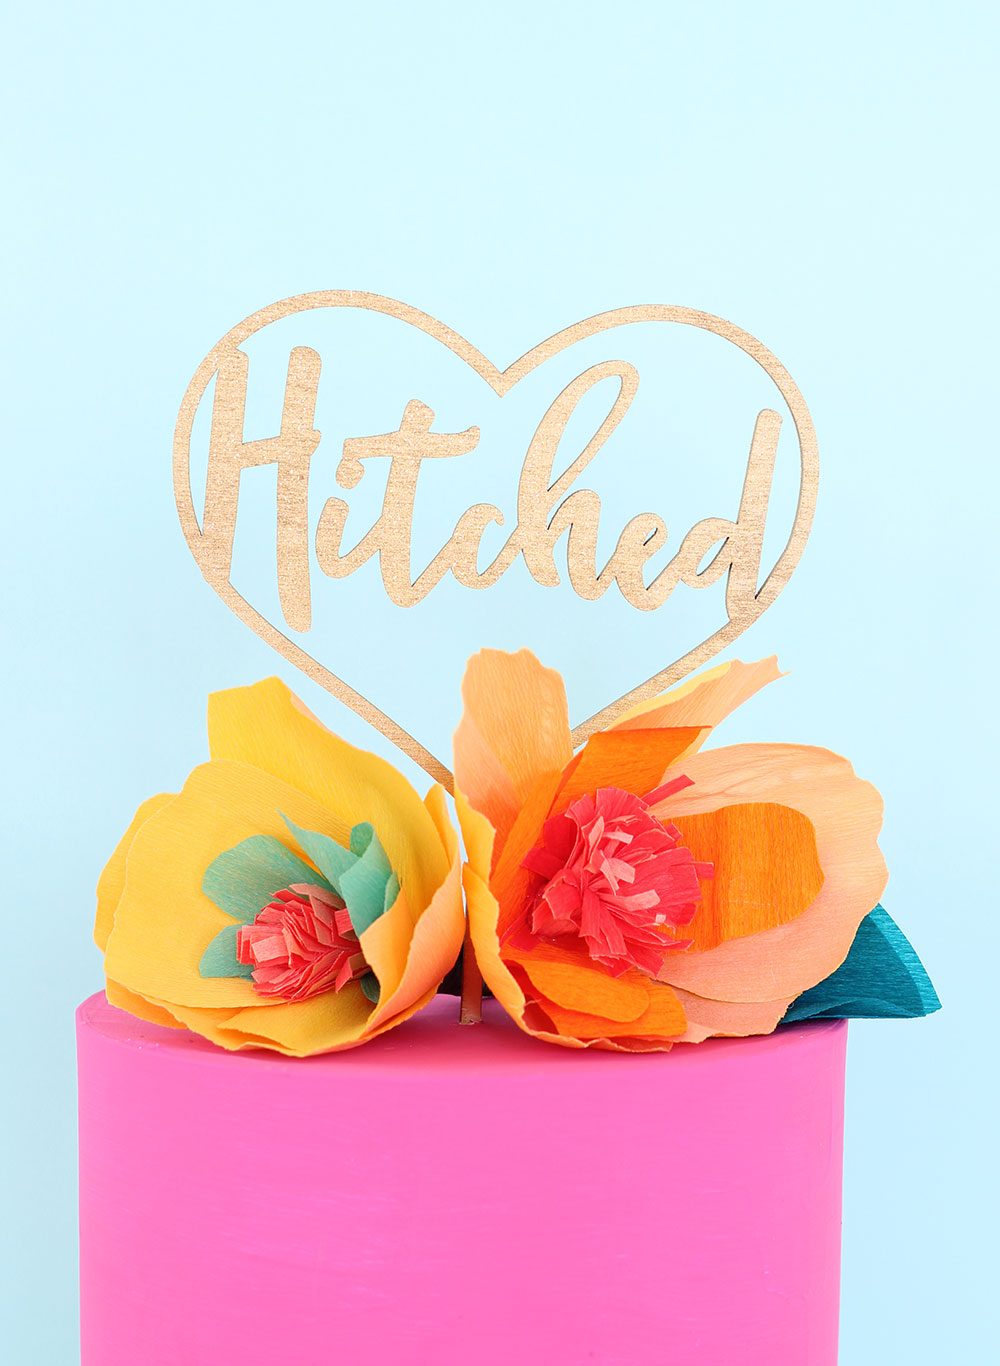 Hitched Gold Laser cut wedding cake topper by The Sweet Escape